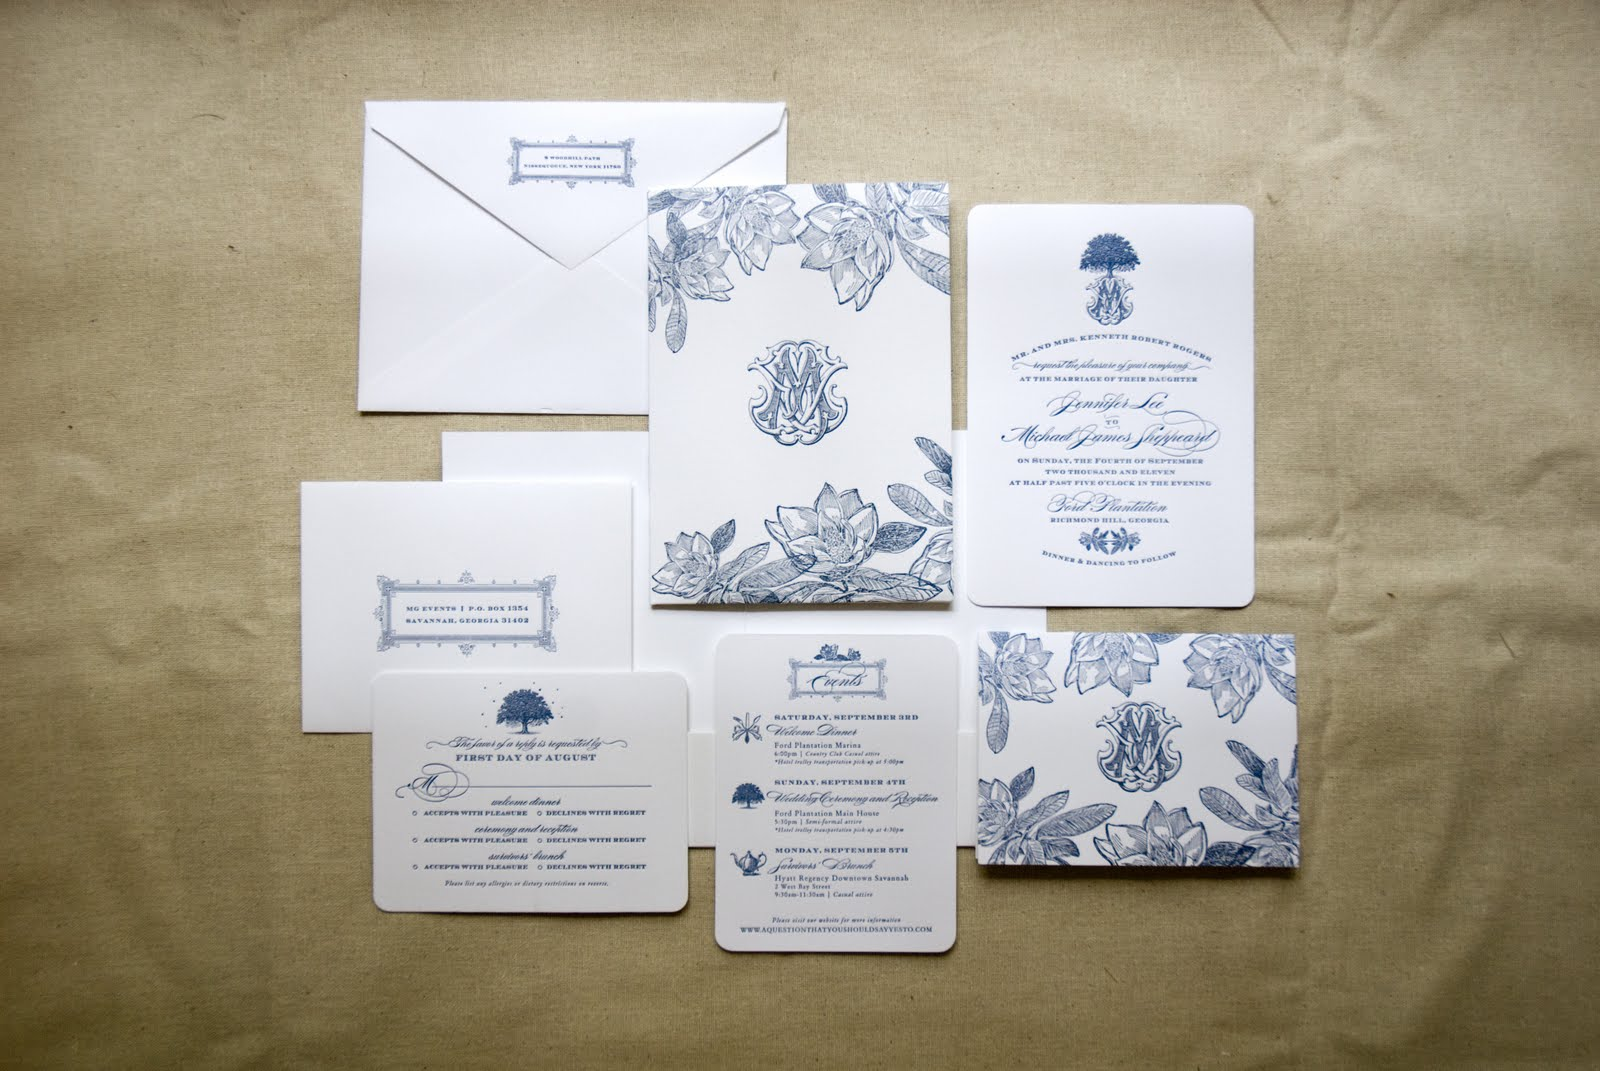 When To Mail Wedding Invitations Emily Post: Magnolia Wedding Invitations With Monogram (Savannah